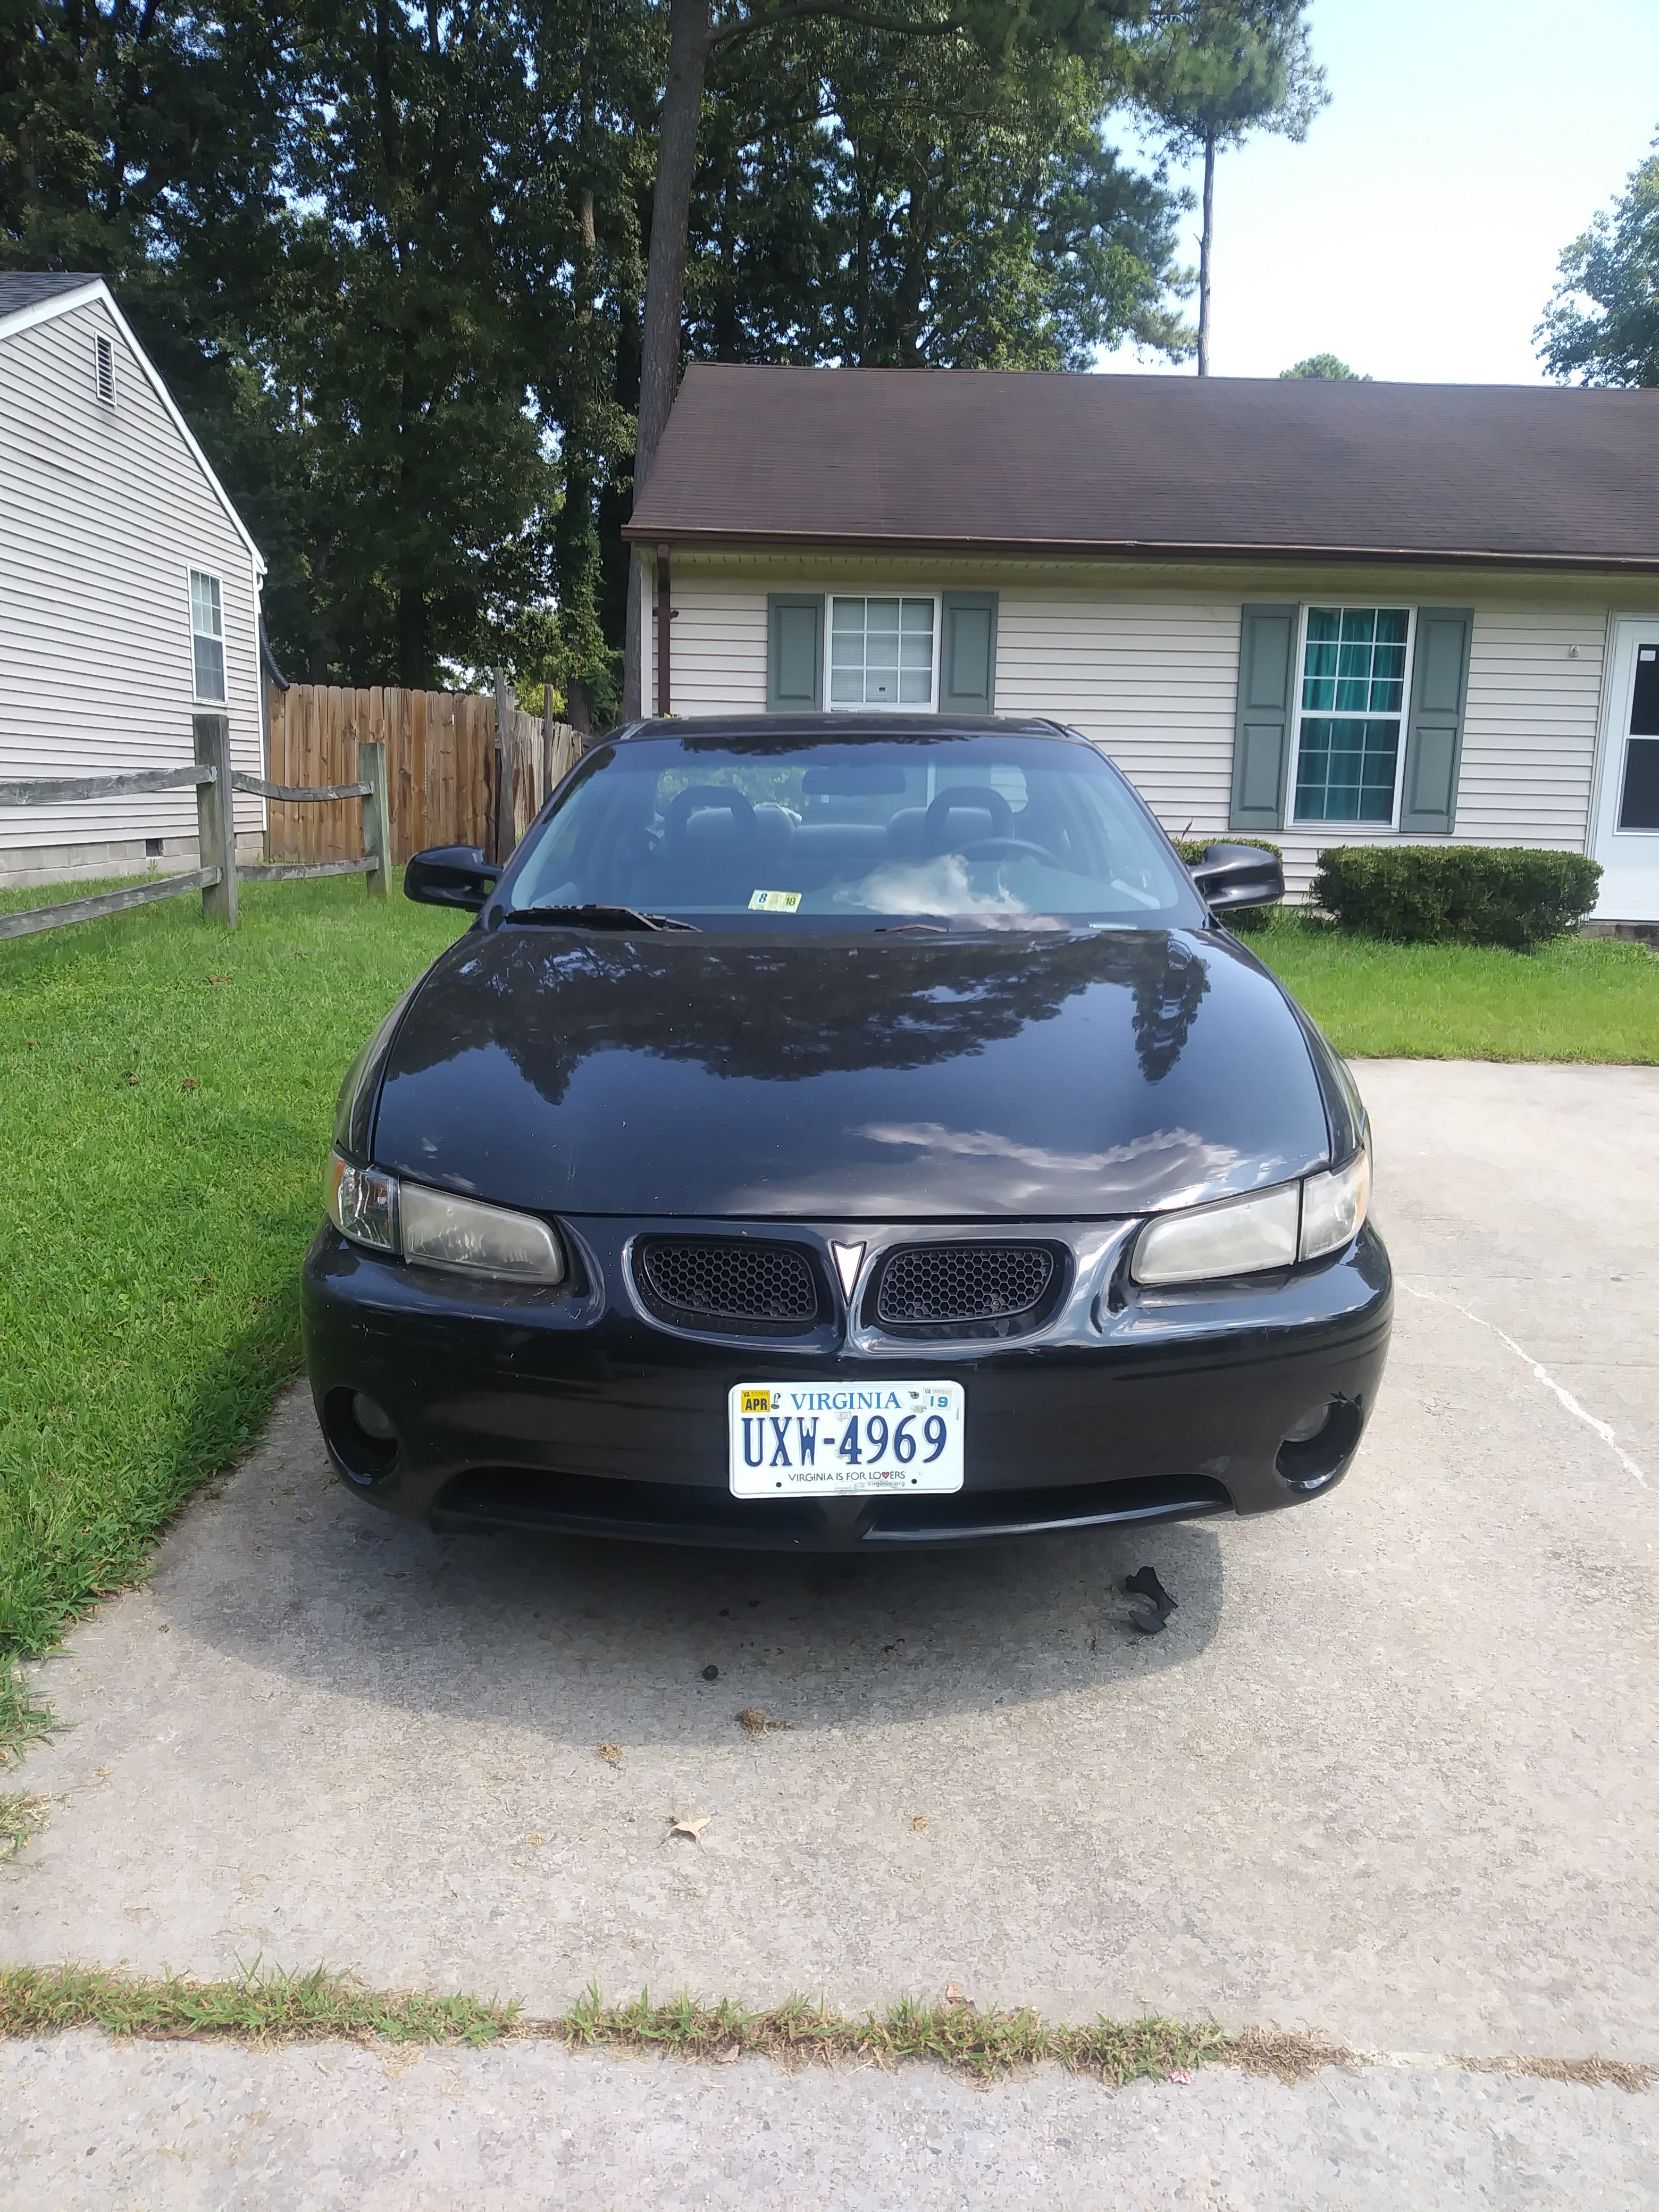 Junk 2000 Pontiac Grand Prix in Virginia Beach